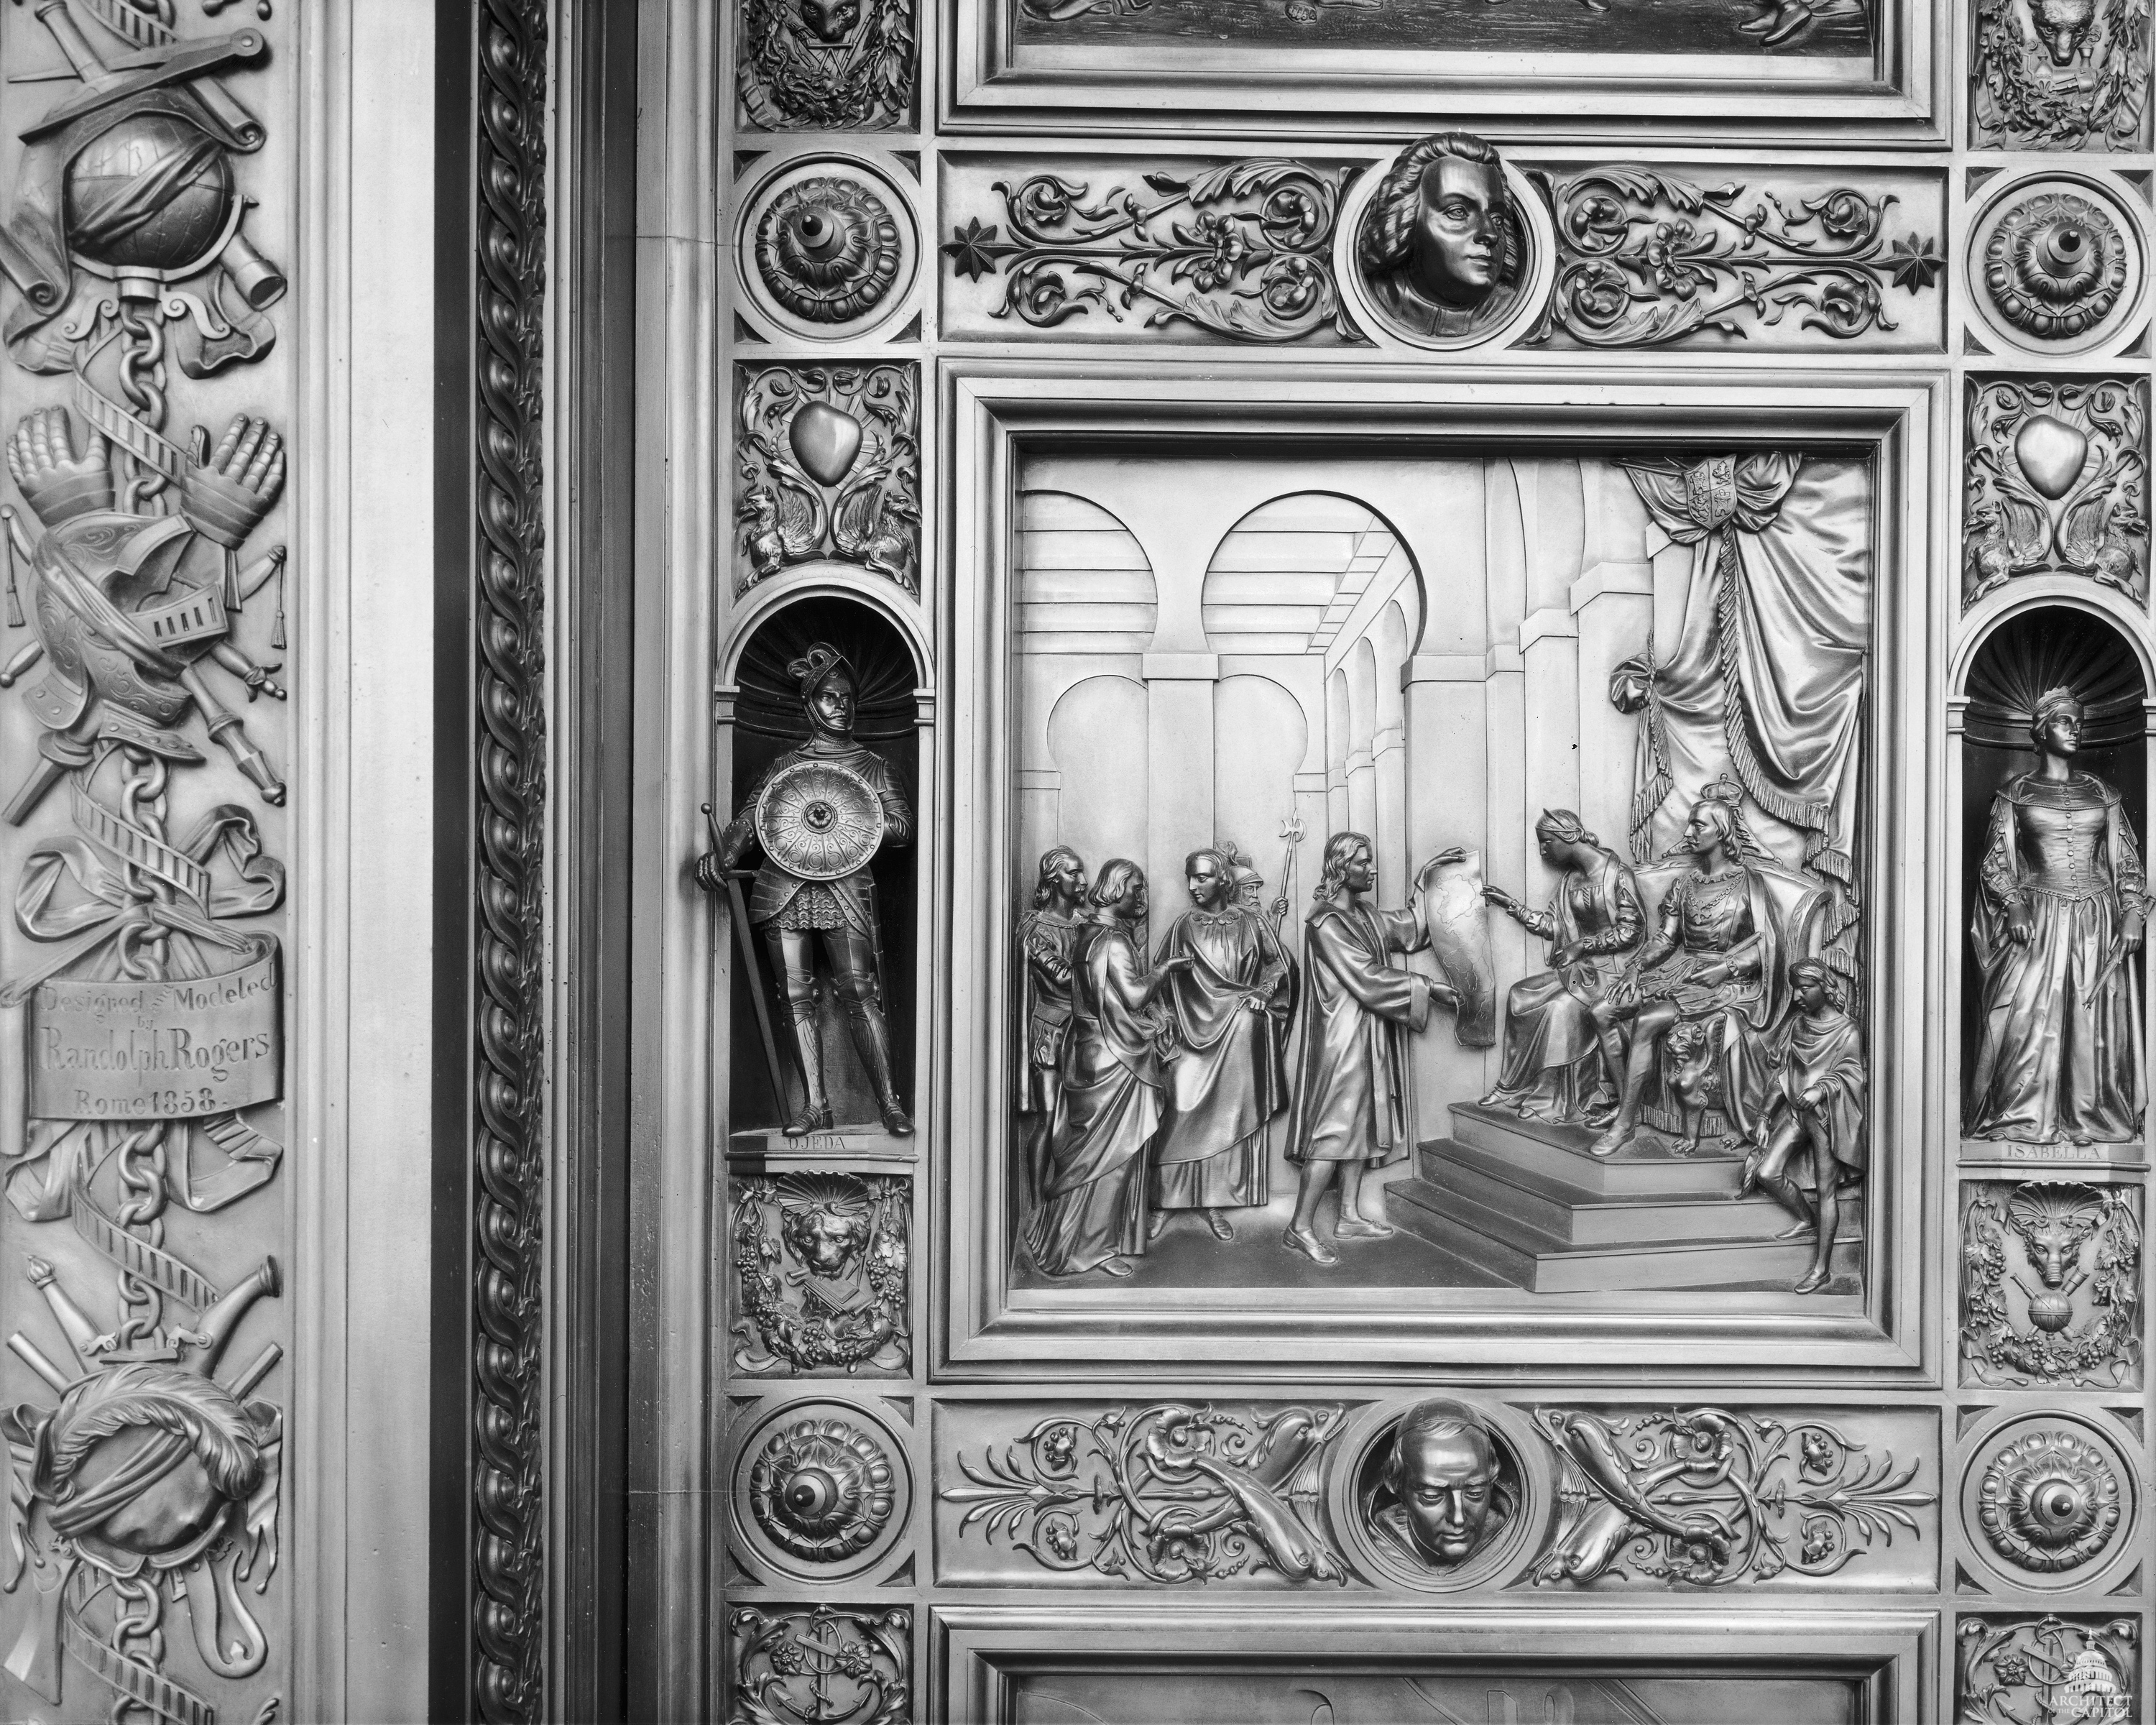 This panel of the Columbus Doors depicts Queen Isabella listening attentively to Columbus's explanation of his map, with King Ferdinand at her side.